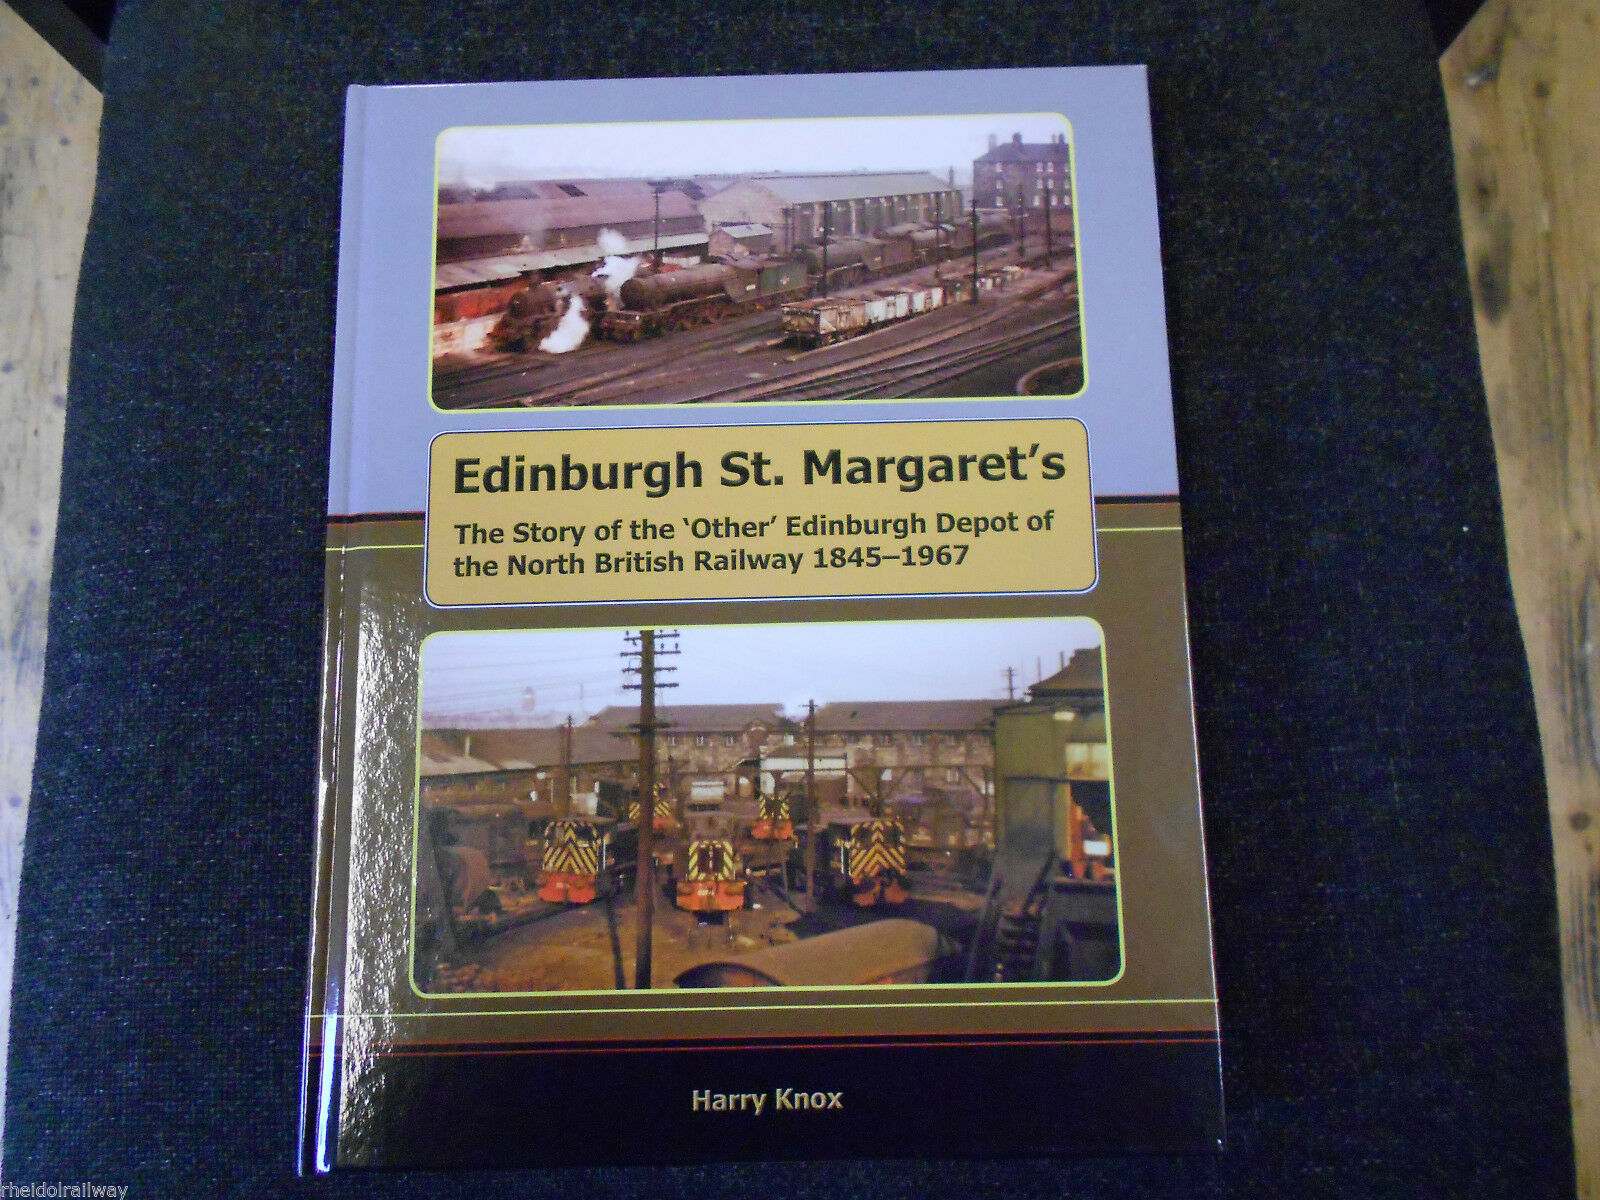 Edinburgh St. Margaret's North British Railway 1845-1967 by Harry Knox - The Vale of Rheidol Railway